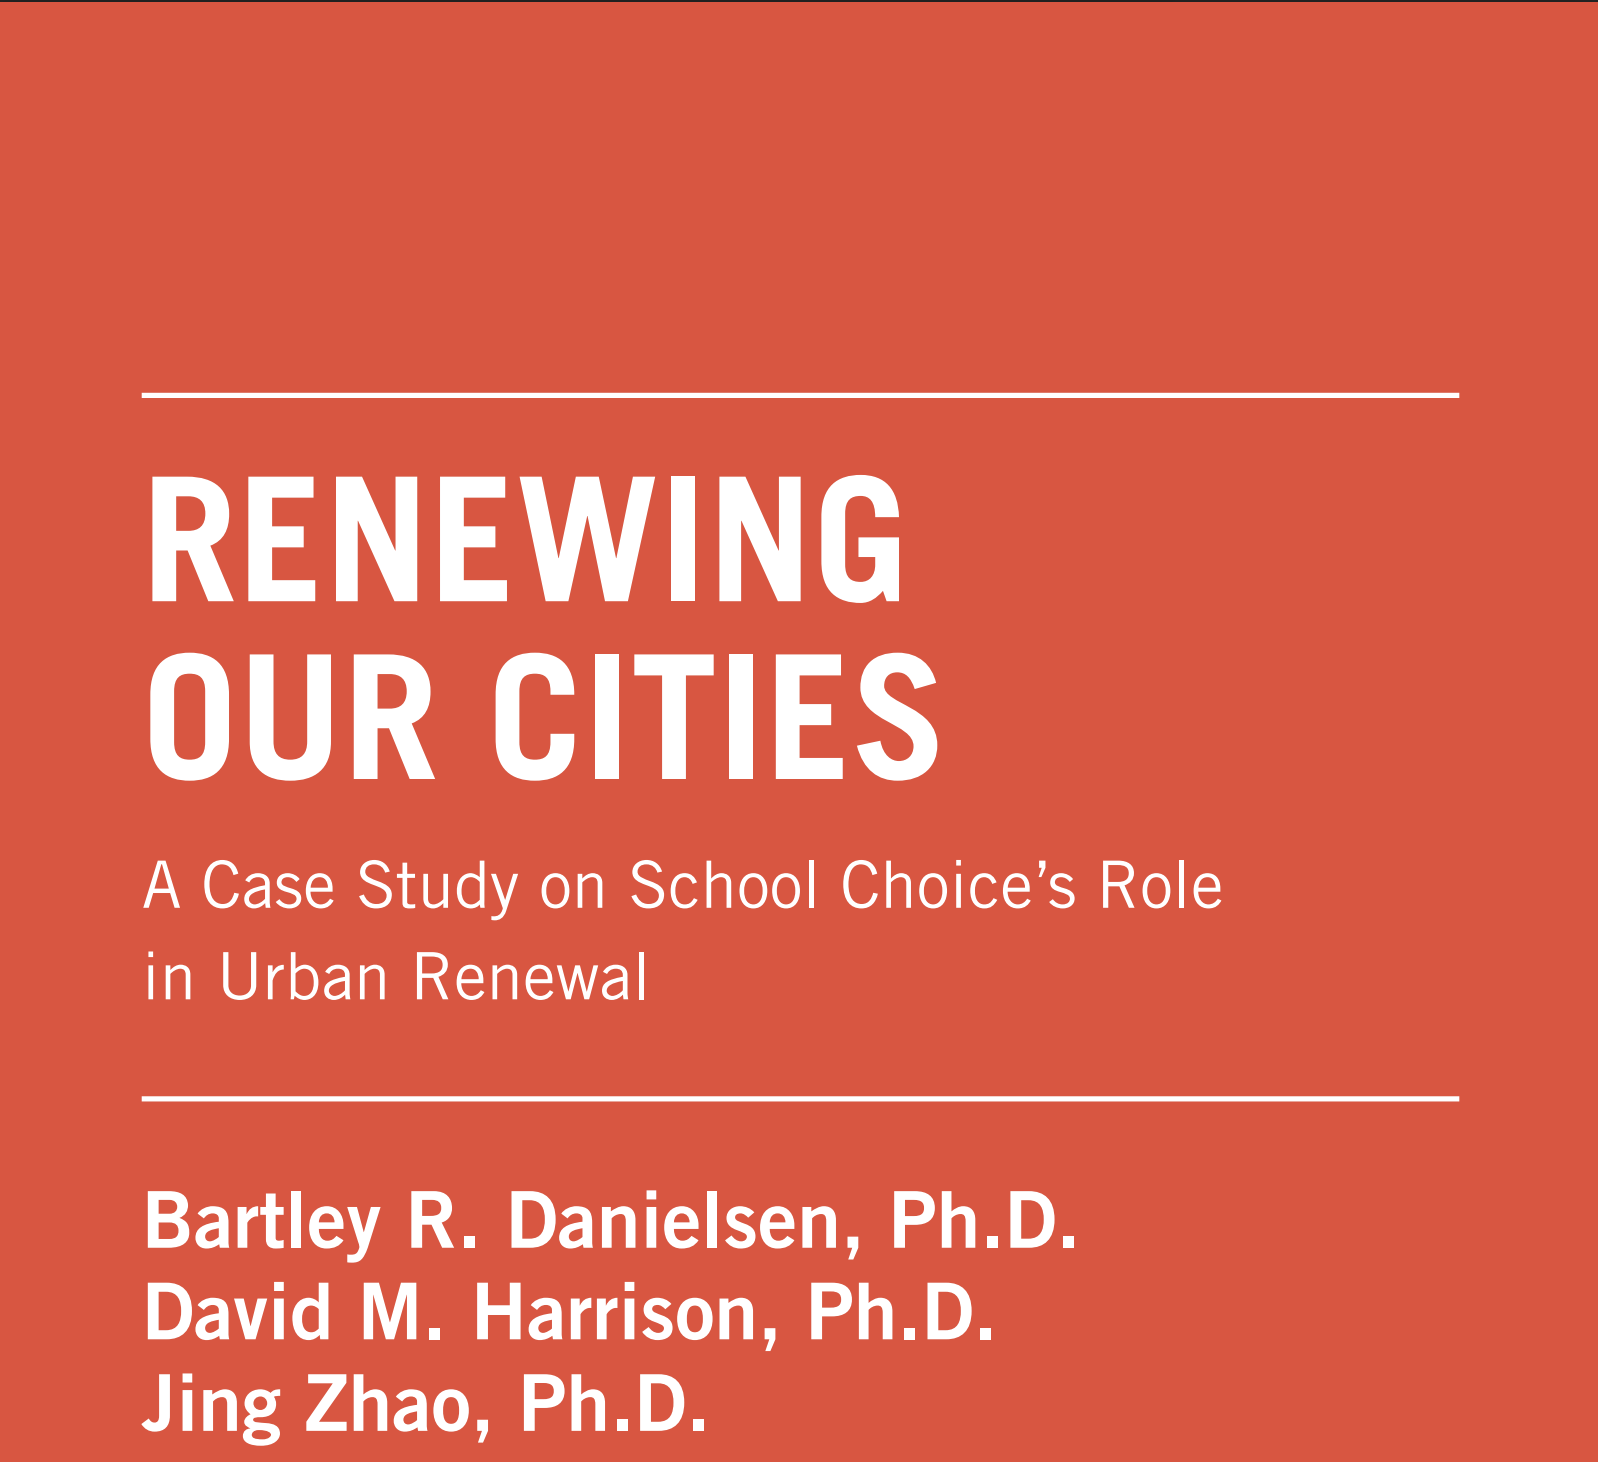 Renewing Our Cities:A Case Study on School Choice's Role in Urban Renewal